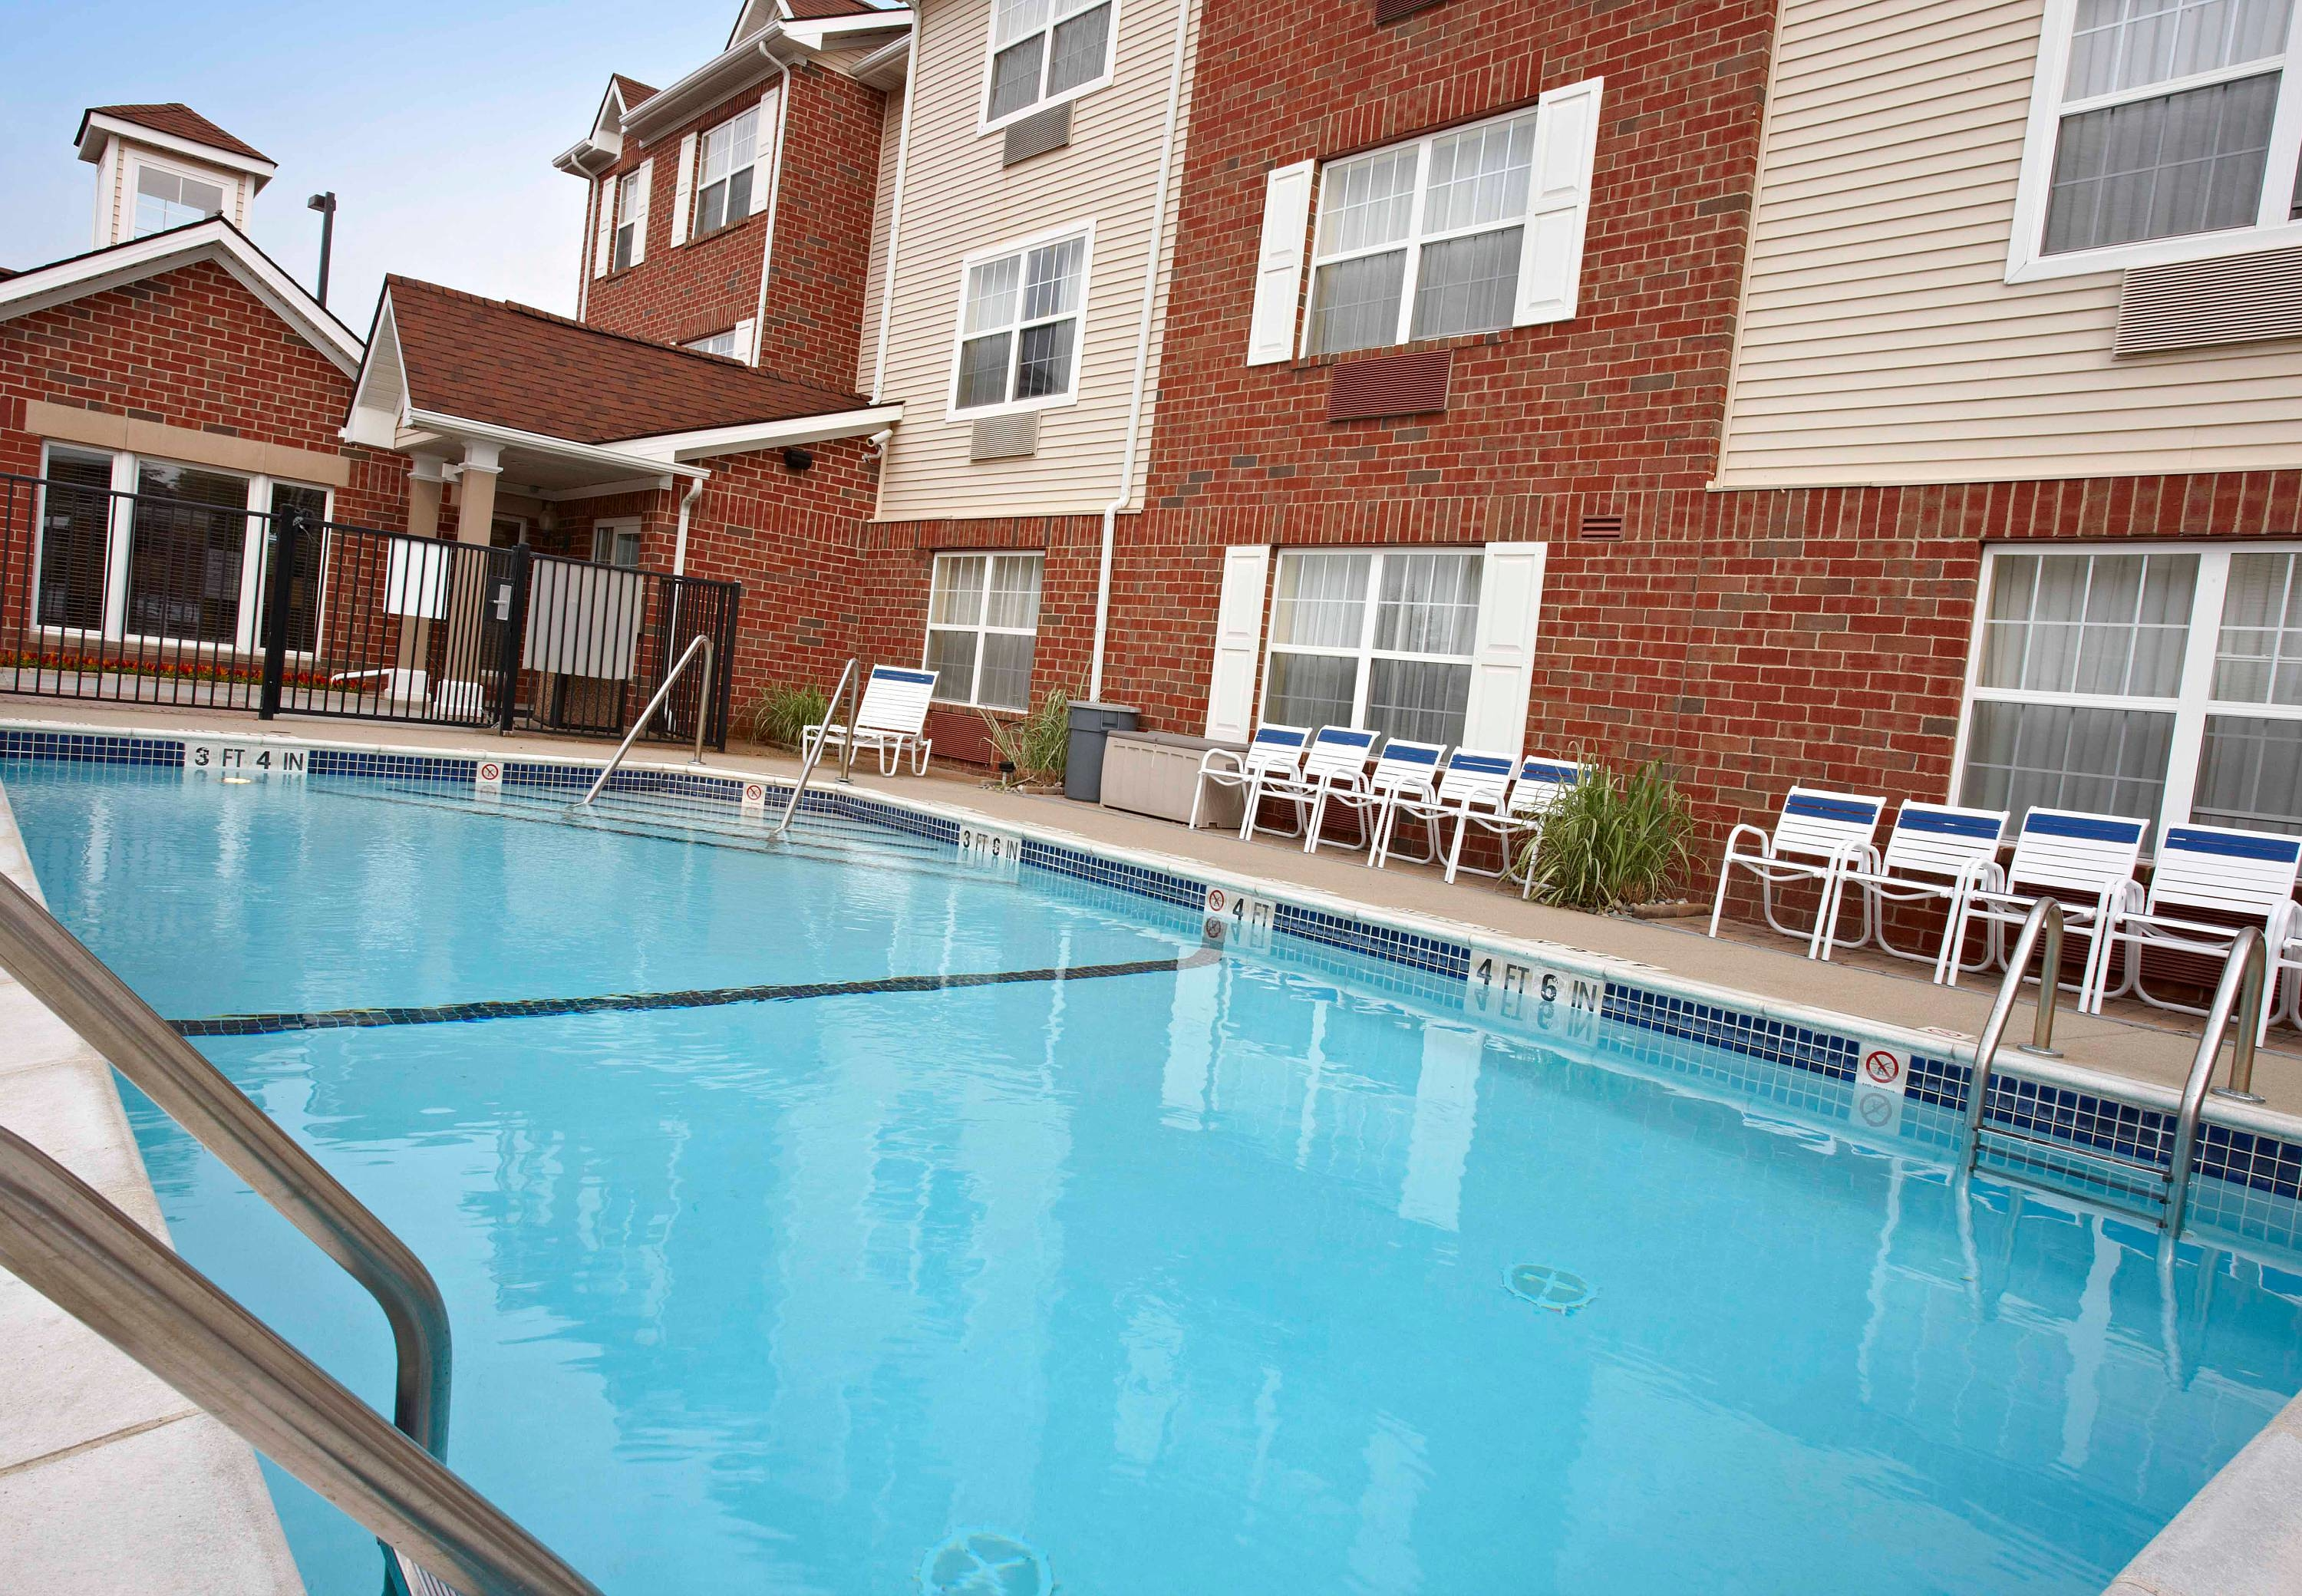 sterling heights Browse 214 hotels with a pool in sterling heights & save money with our expedia price guarantee read user reviews of over 321,000 hotels worldwide no expedia cancellation fee.